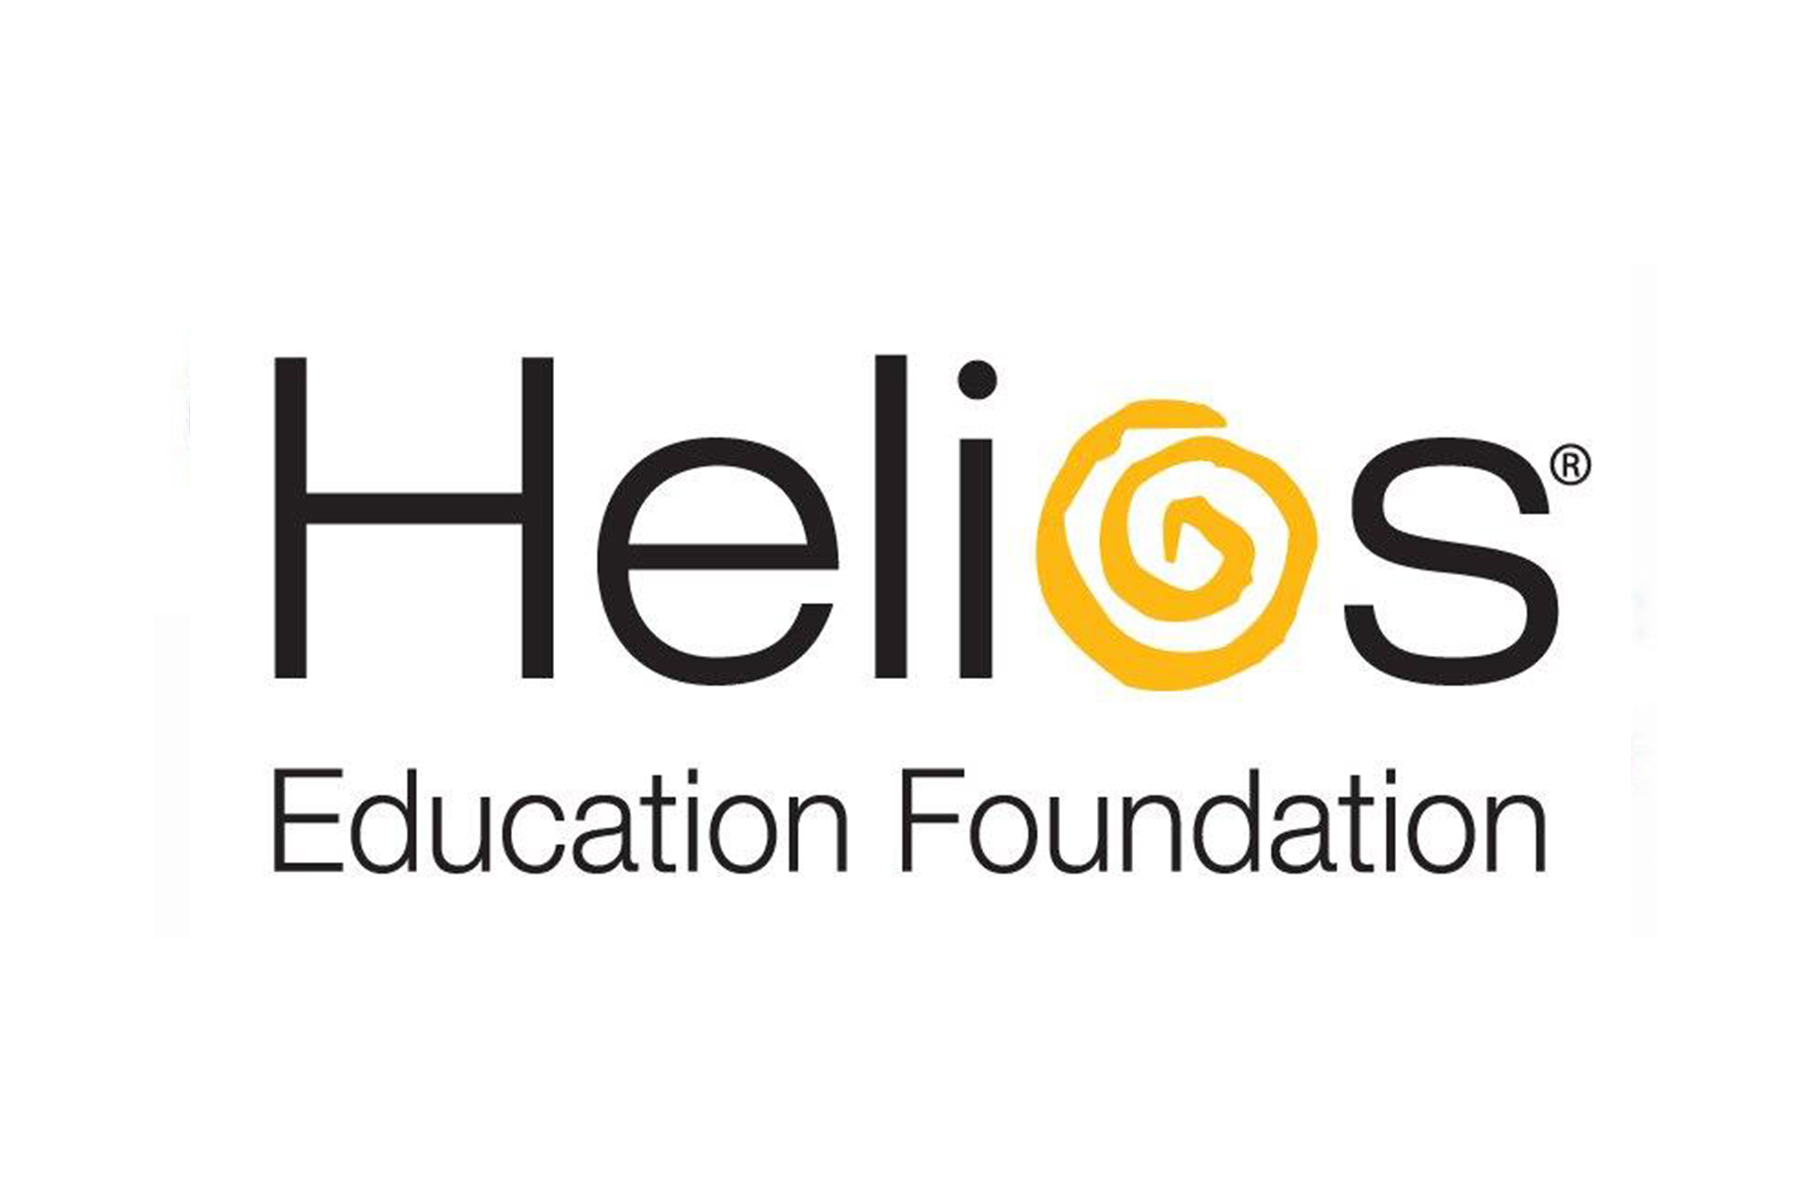 Helios Education Foundation.jpg